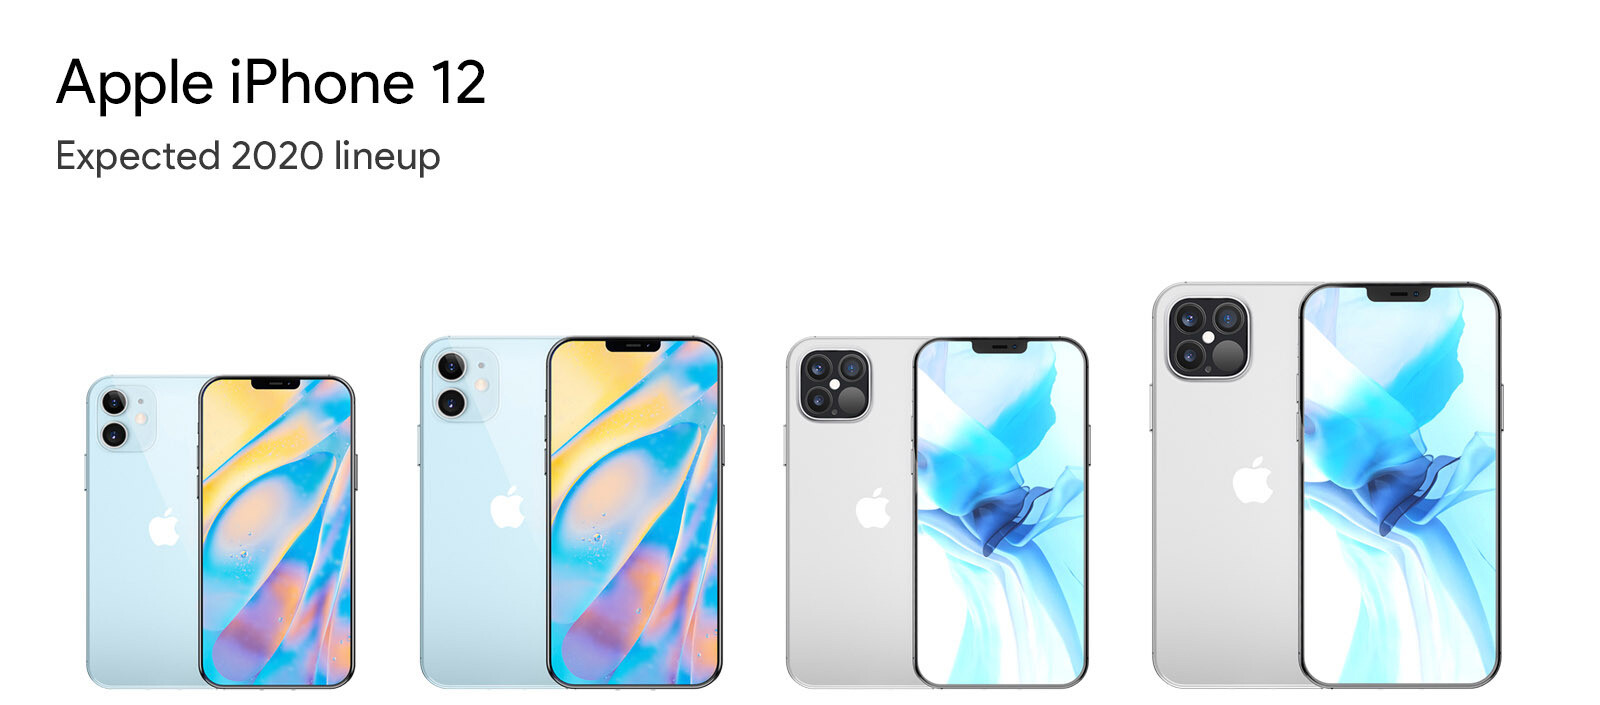 Apple iPhone 12 mini, iPhone 12, 12 Pro, and 12 Pro Max models - When and how to watch the 2020 Apple iPhone 12 5G October event live stream